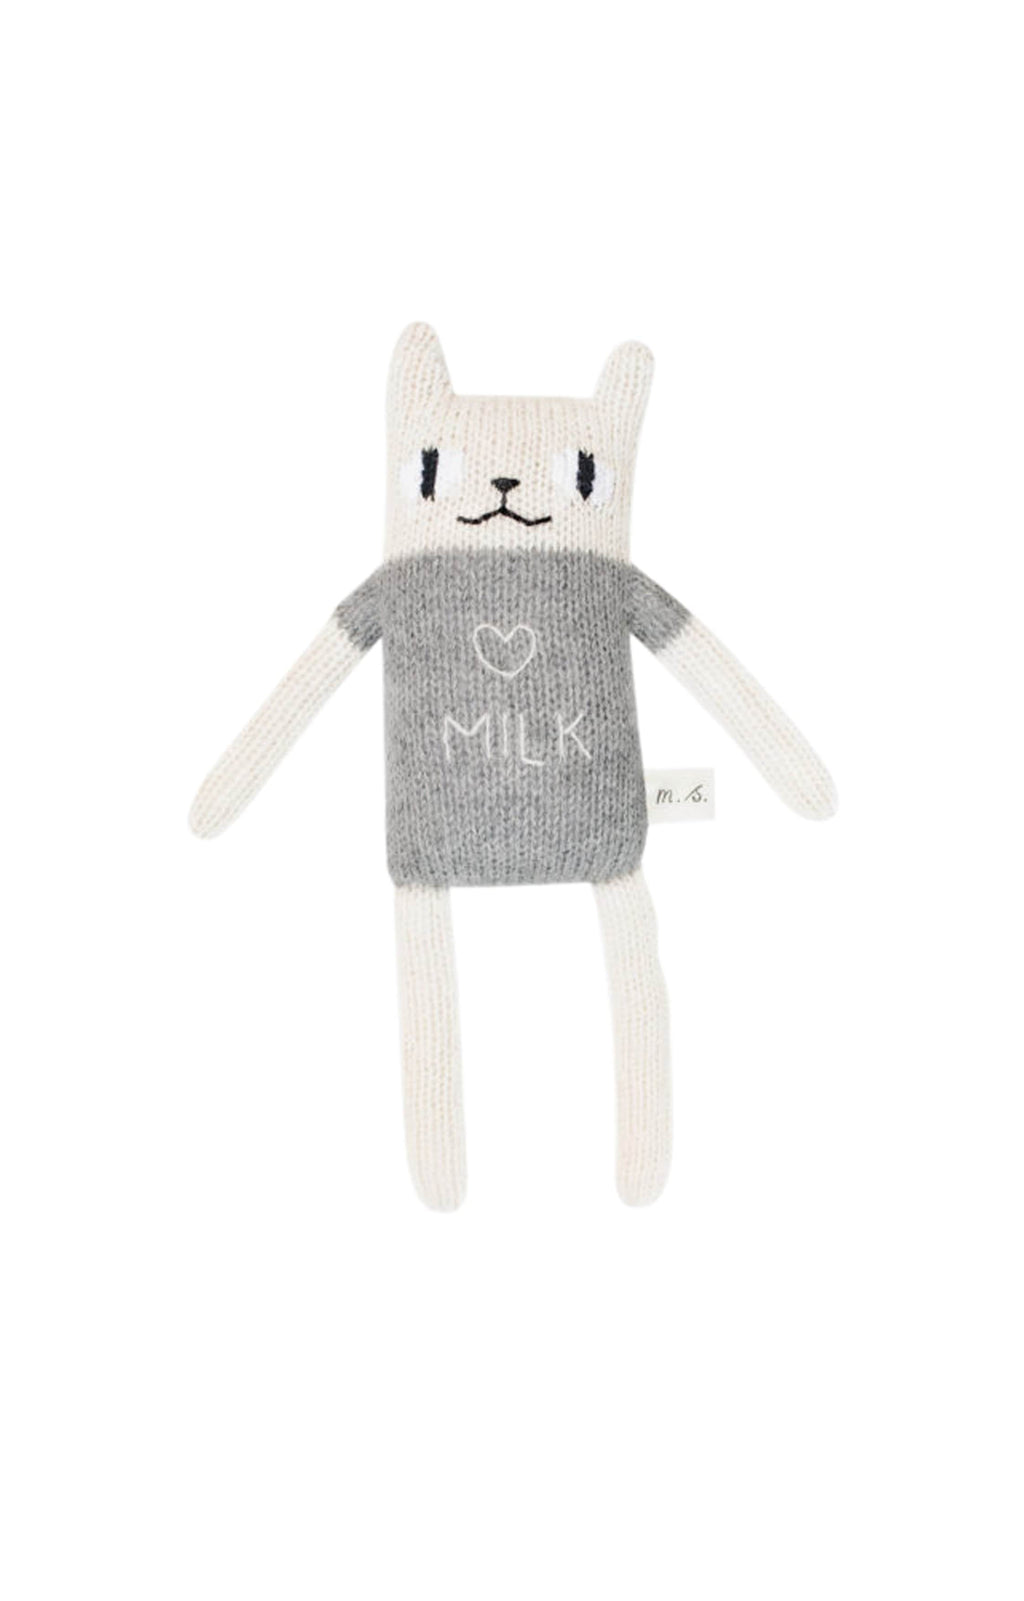 "Main Sauvage ""milk"" cat knit toy, Grey"